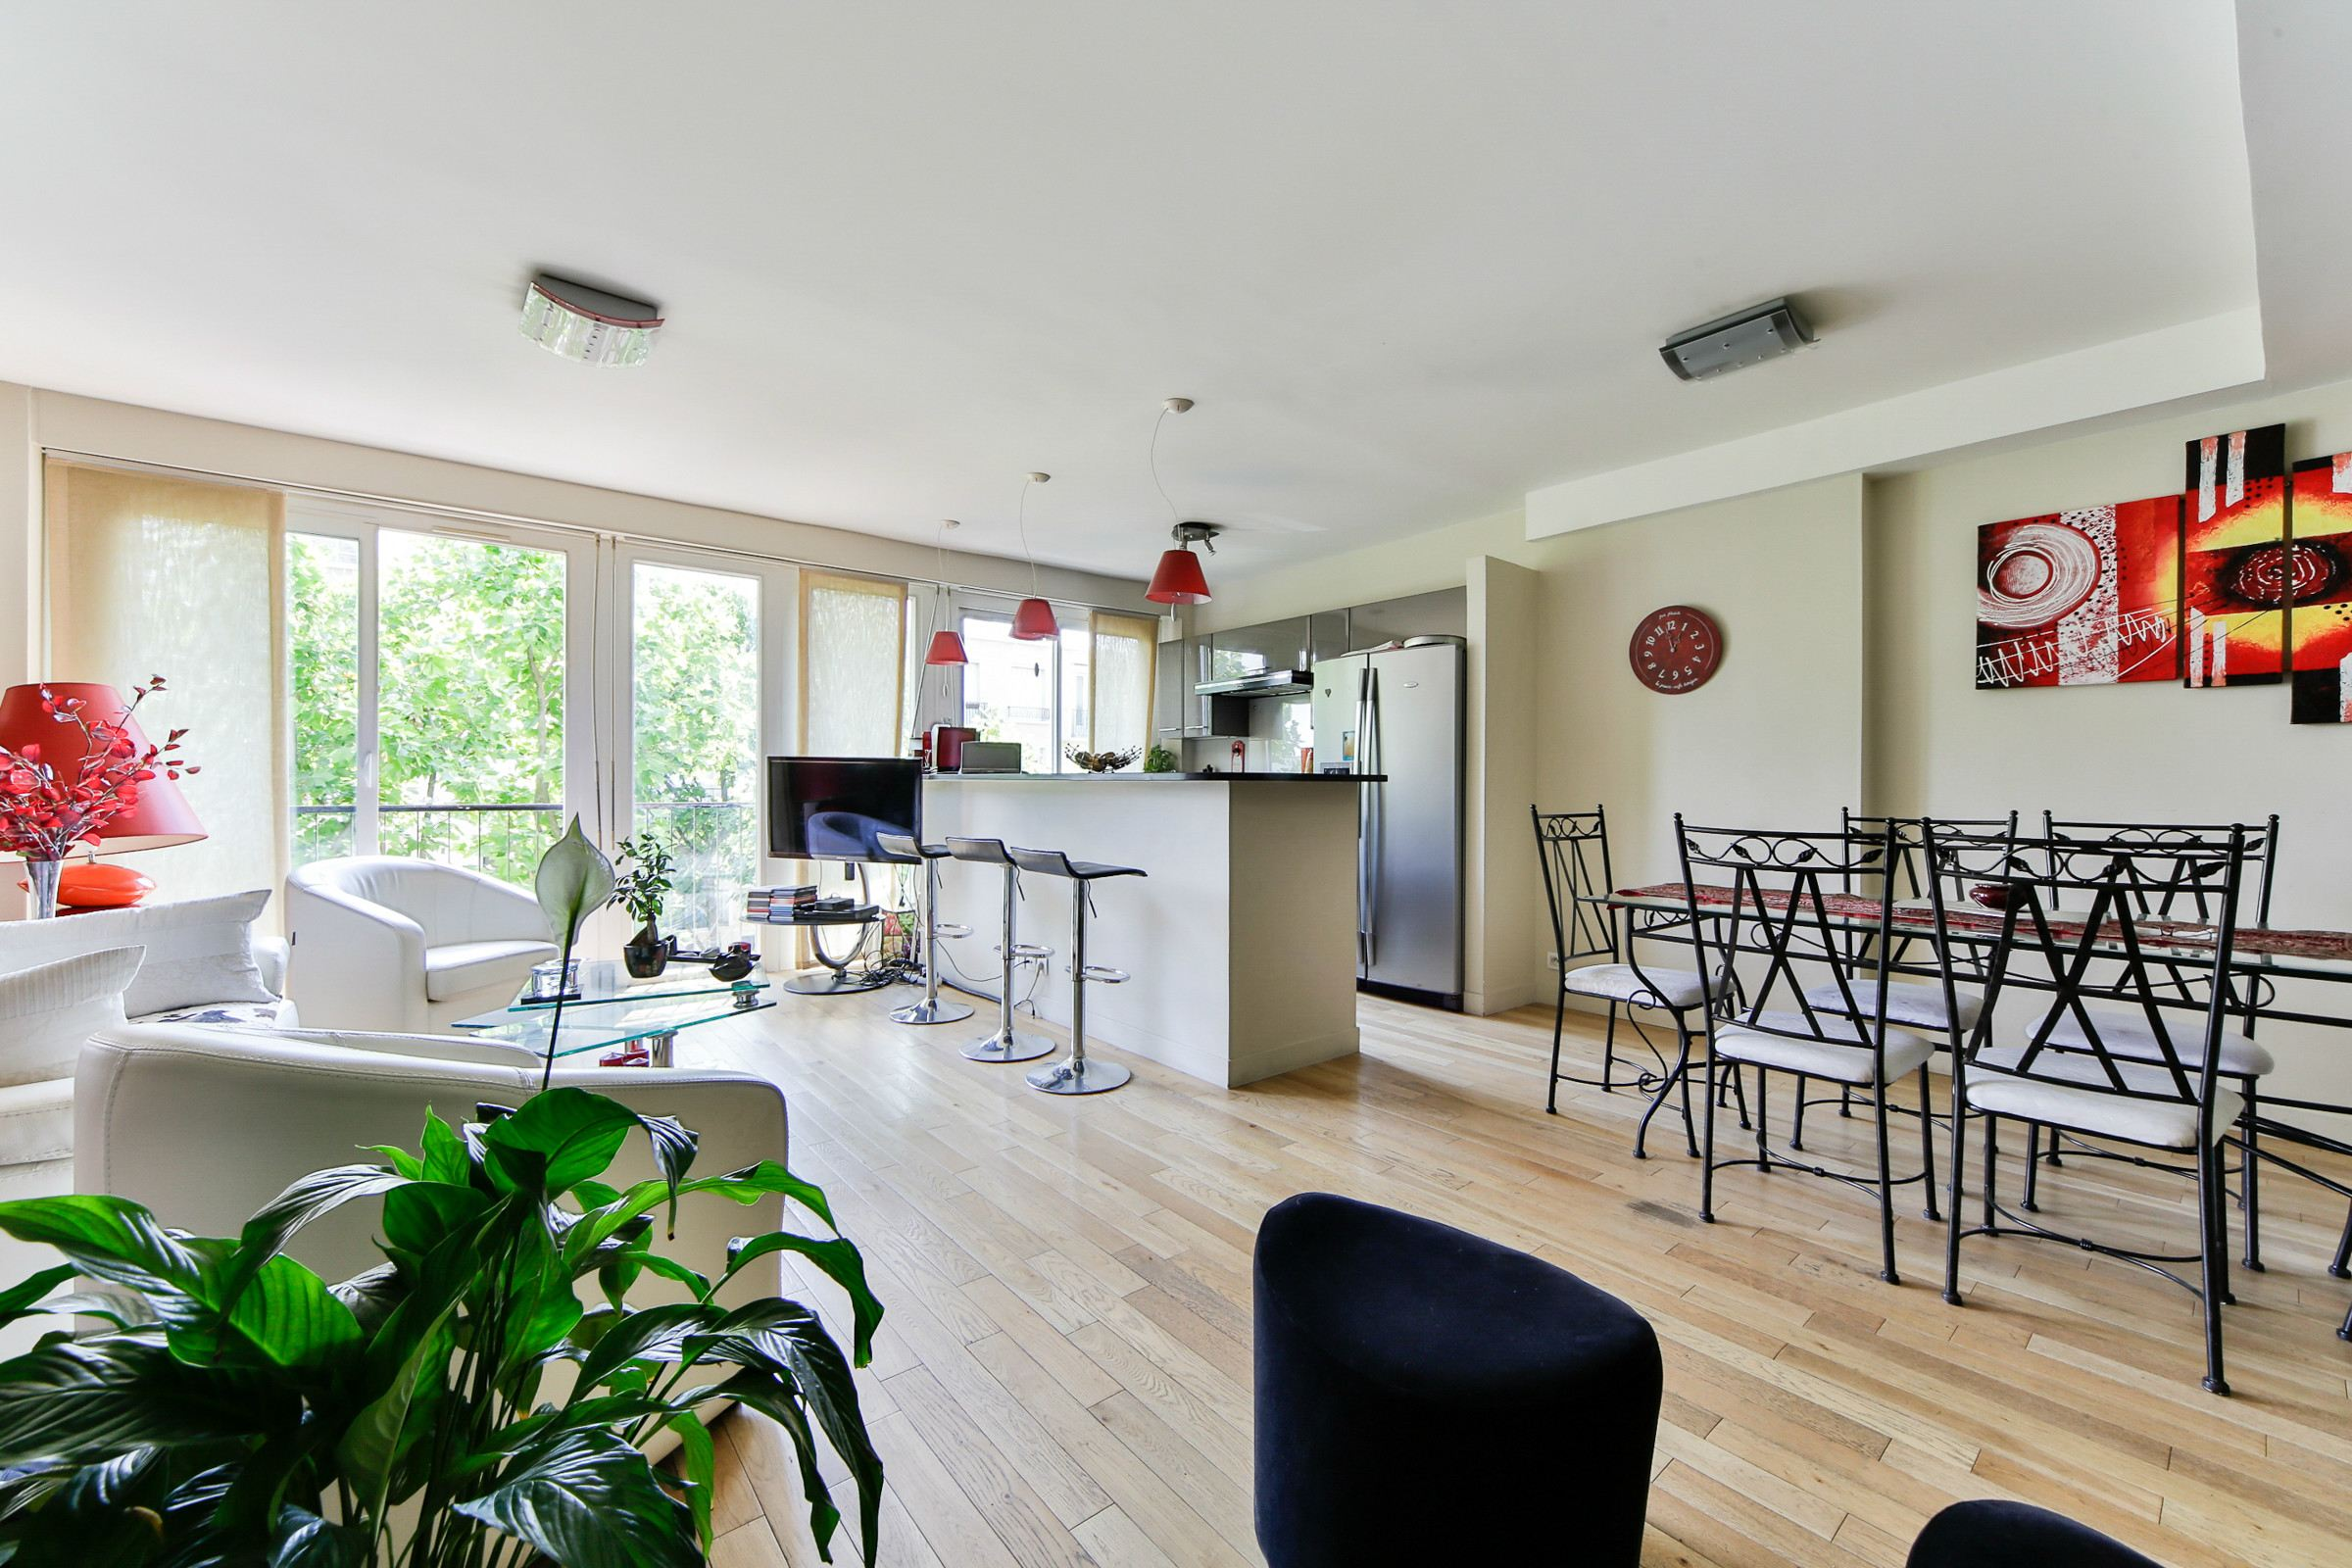 Property For Sale at Neuilly. Chezy. Apartment with a balcony.